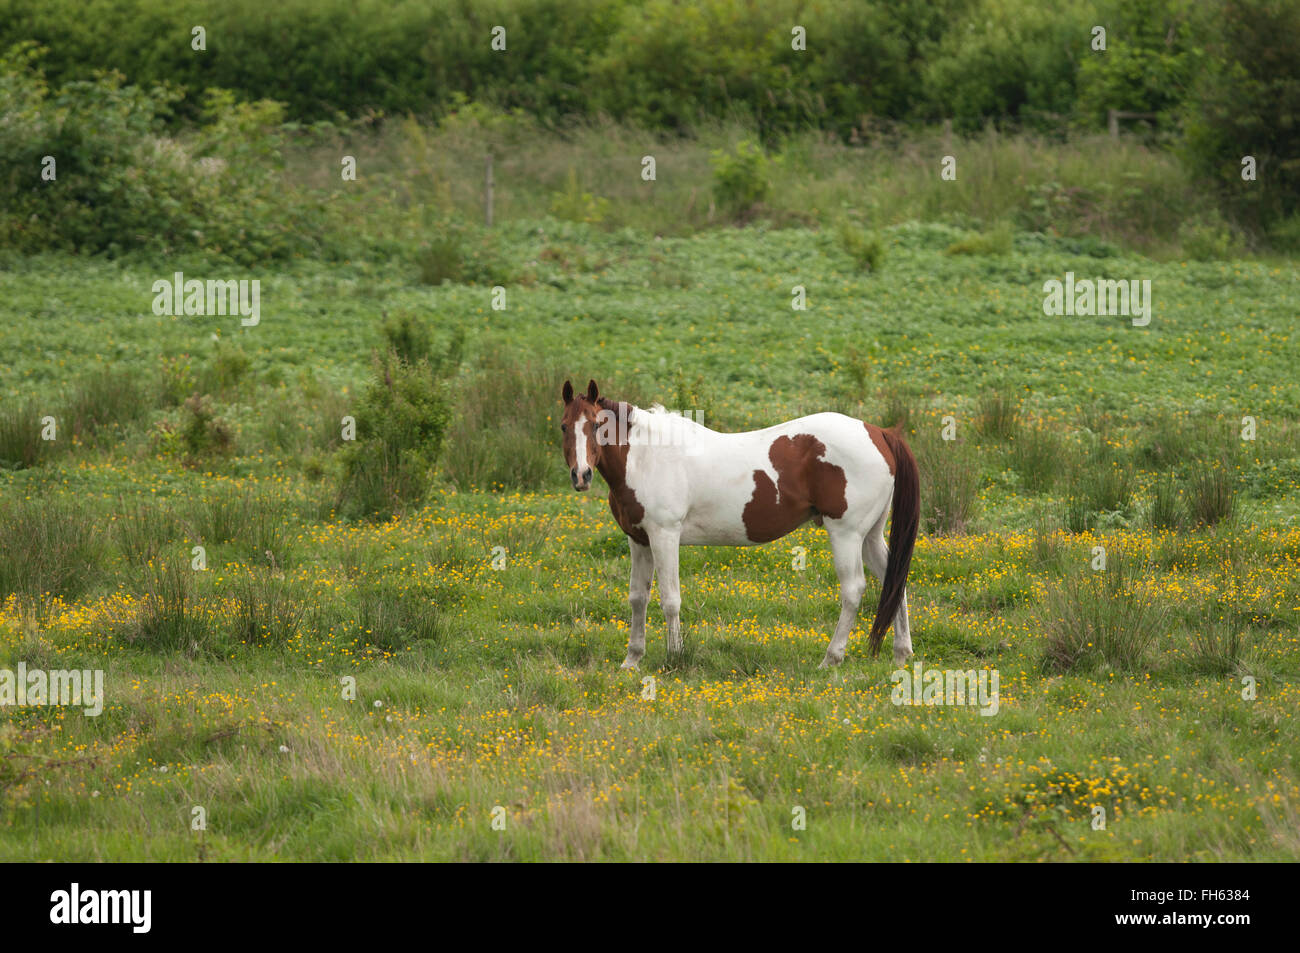 Pinto horse grazing in a meadow - Stock Image